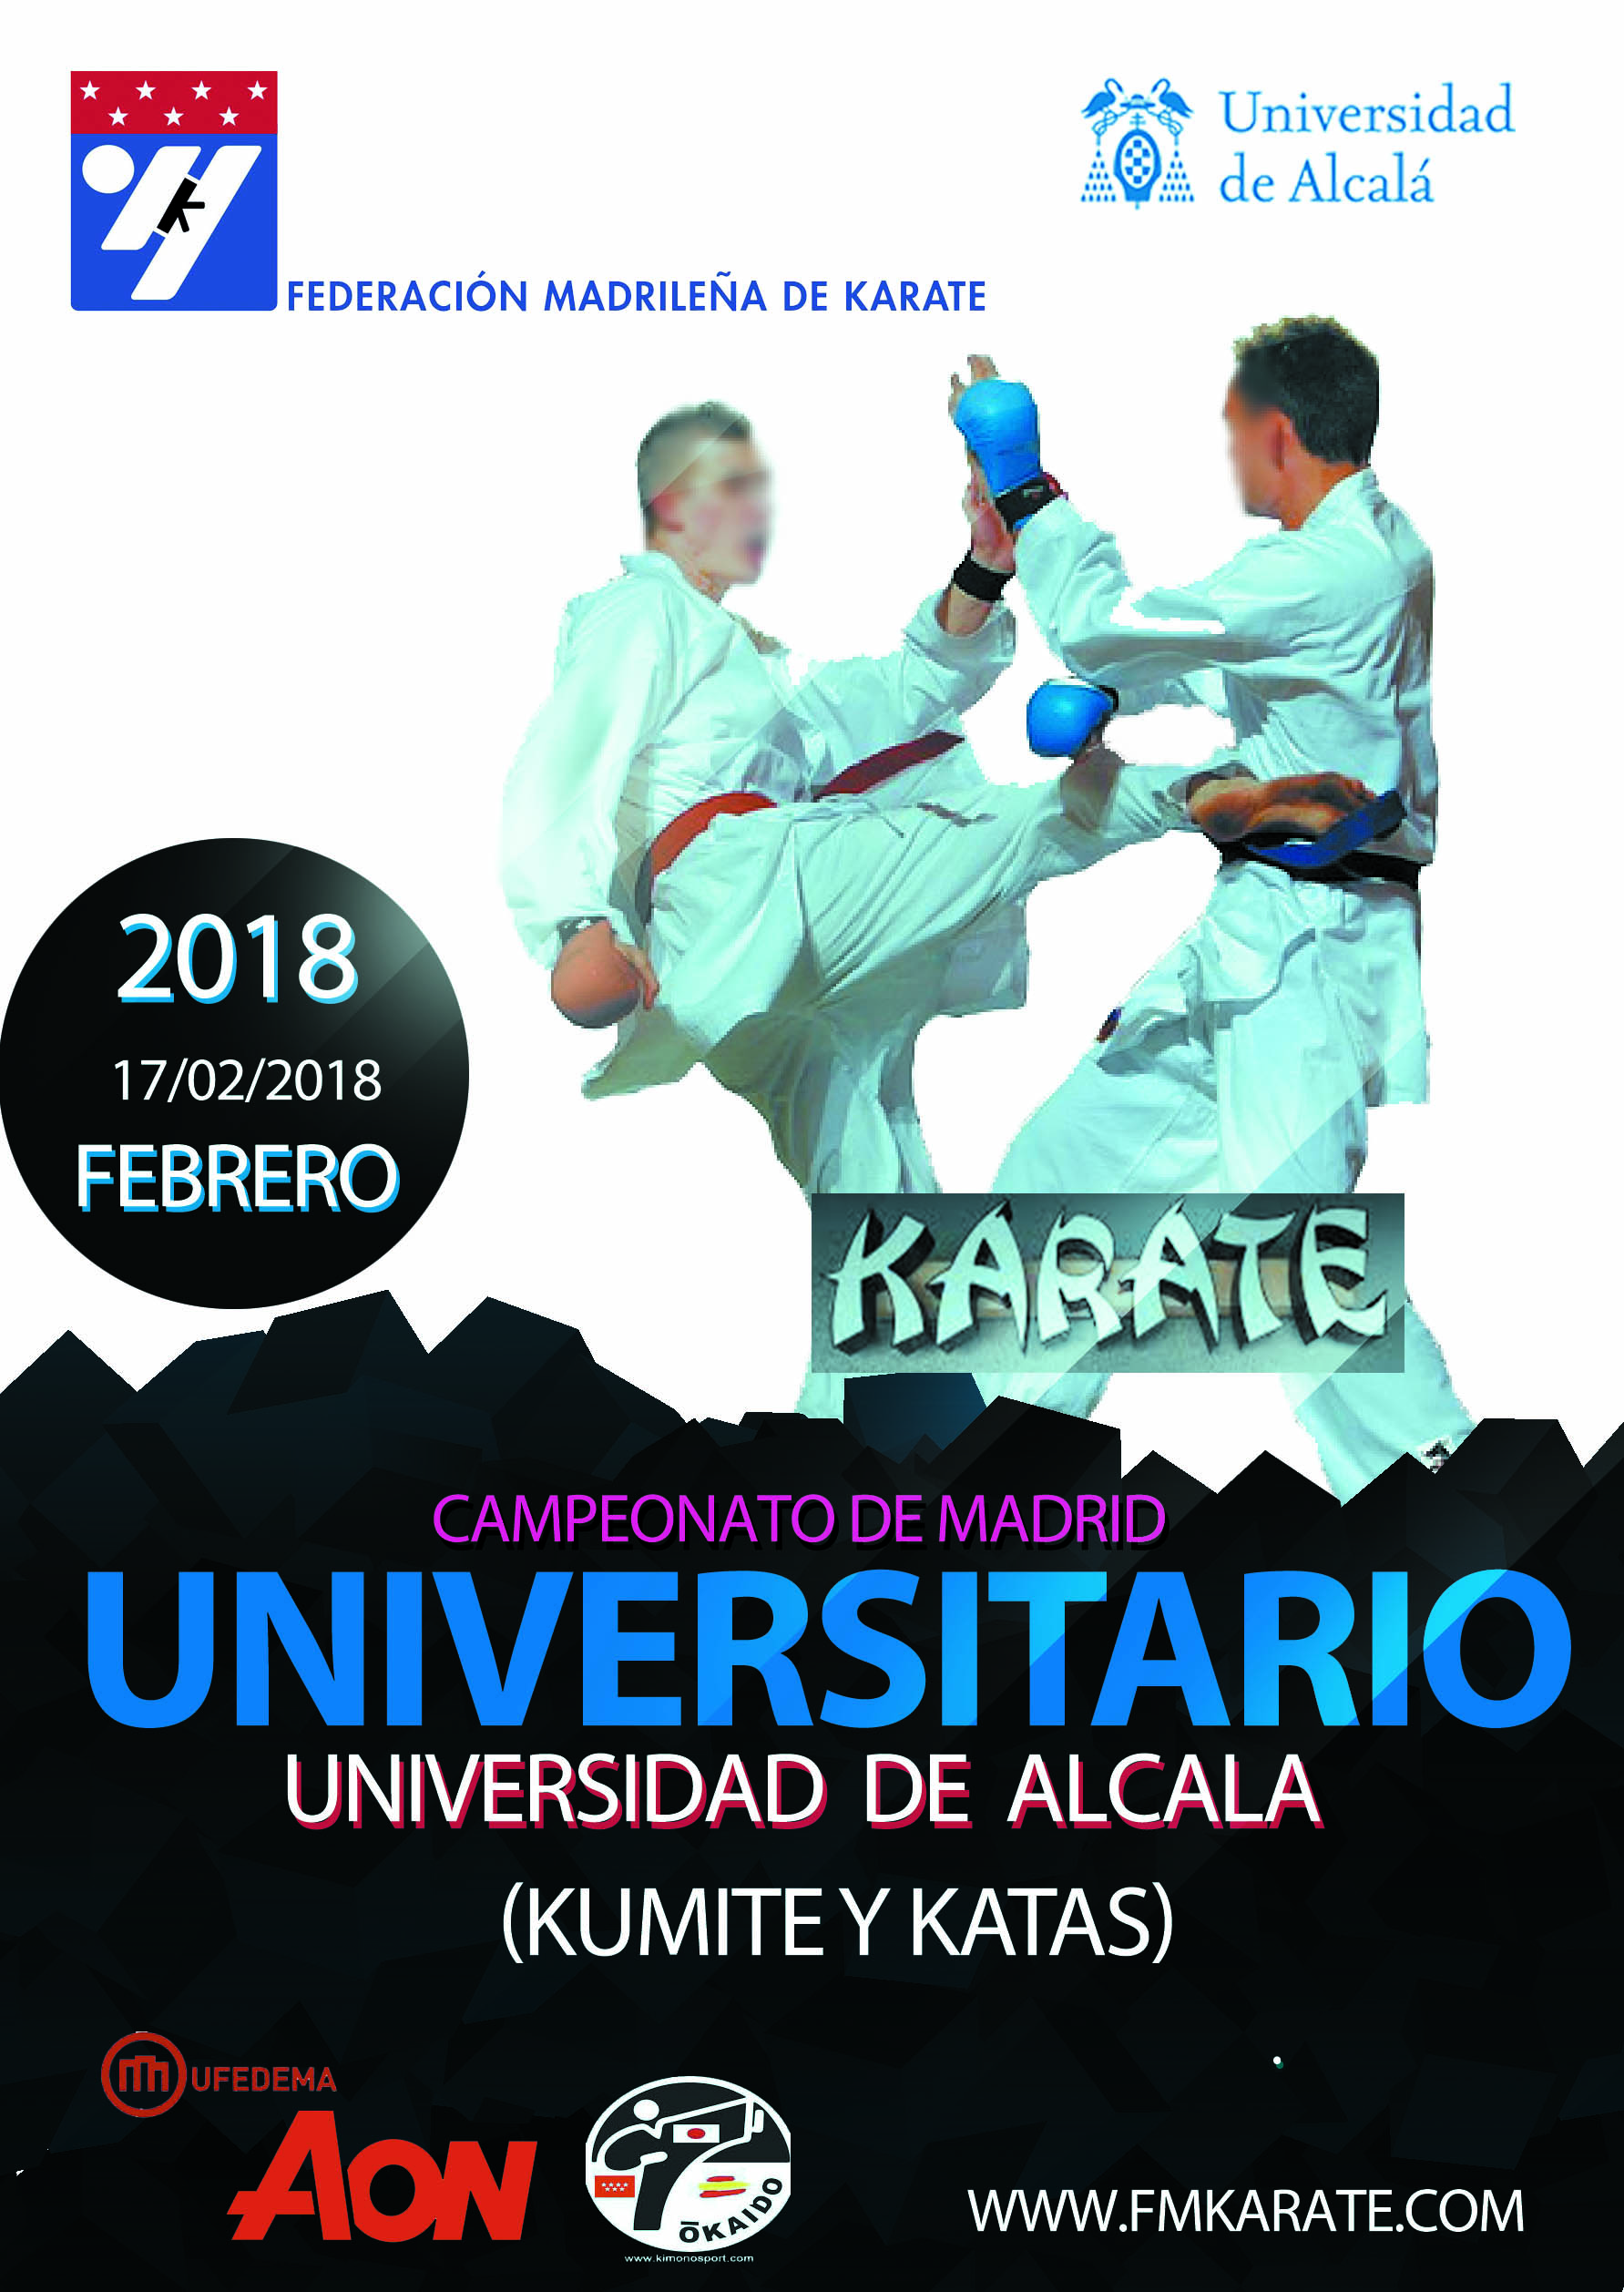 Campeonato de Madrid Universitario 2018